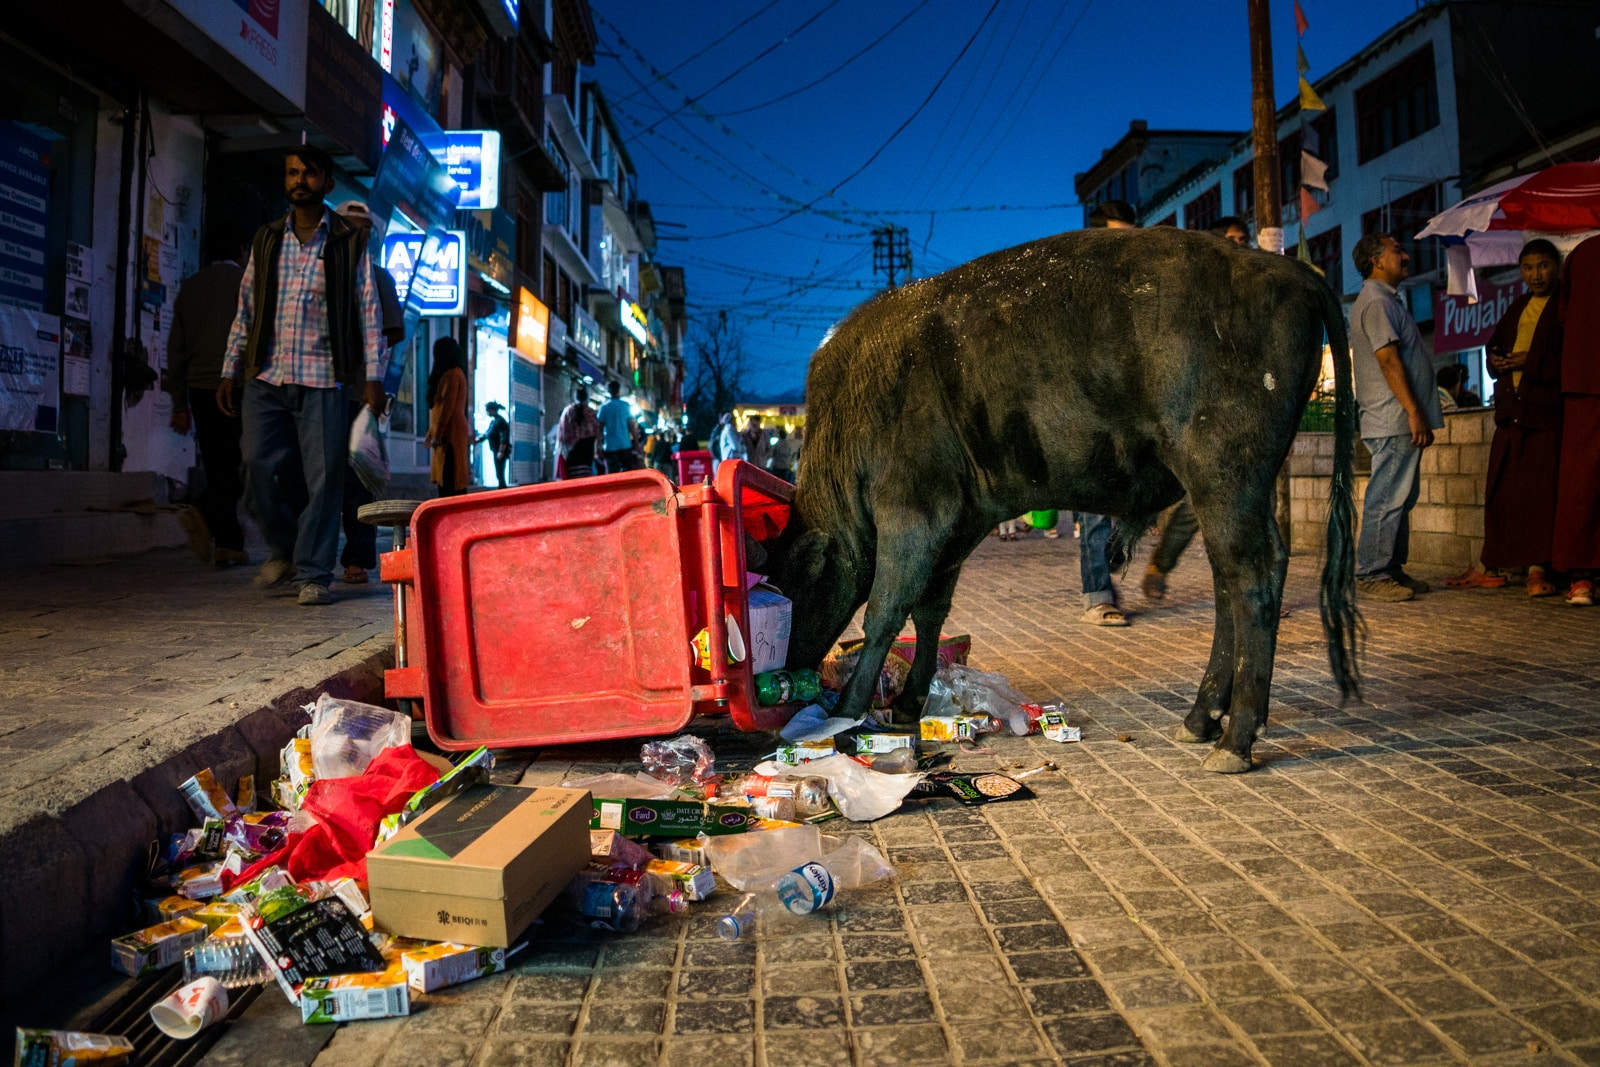 Why we fell in love with India - A cow eating trash in Leh Ladakh, India - Lost With Purpose travel blog